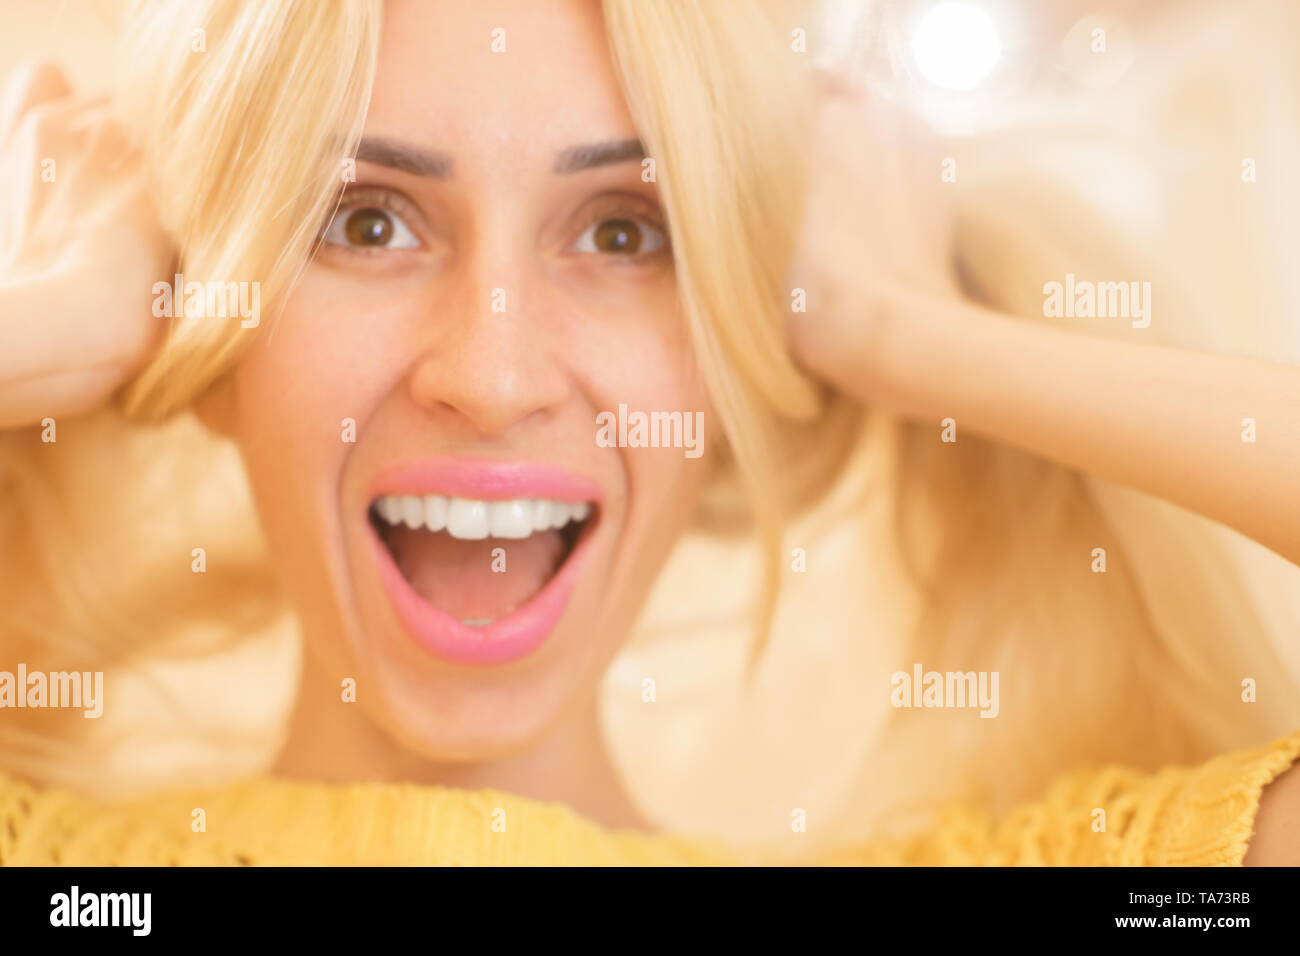 Portrait of lovely smiling young girl doing ponytails with long hair and laughing playfully - Stock Image